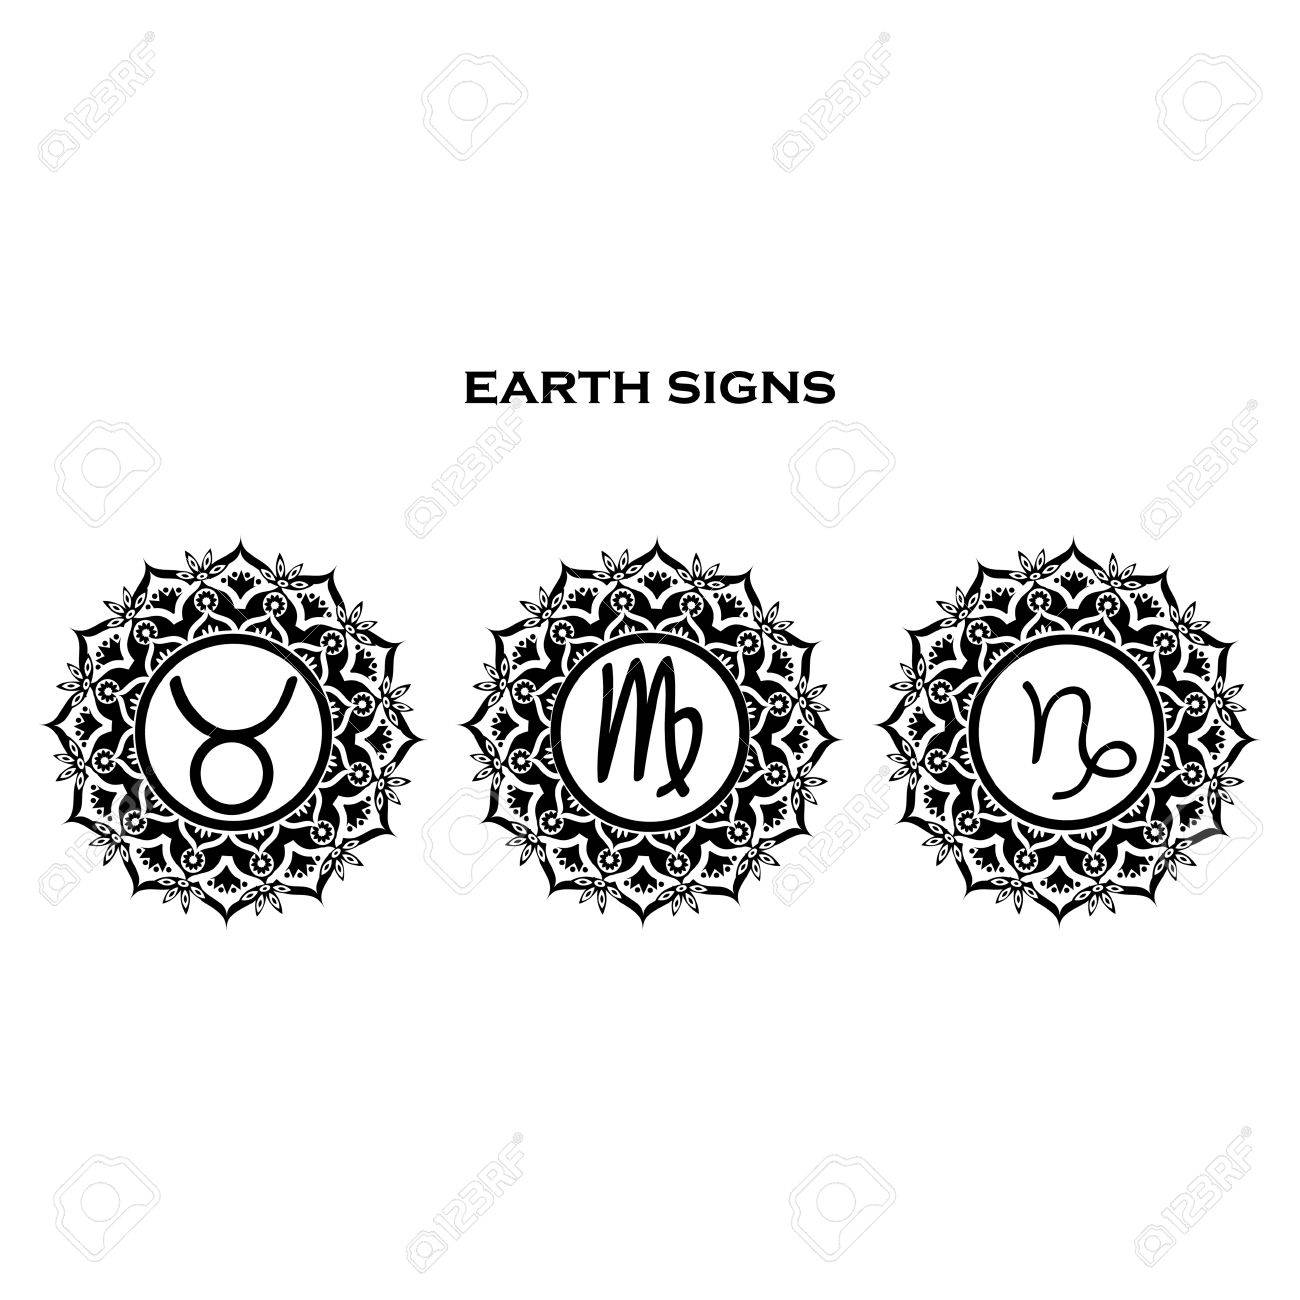 Zodiac symbols earth element mandala taurus virgo capricorn zodiac symbols earth element mandala taurus virgo capricorn stock vector 52842538 buycottarizona